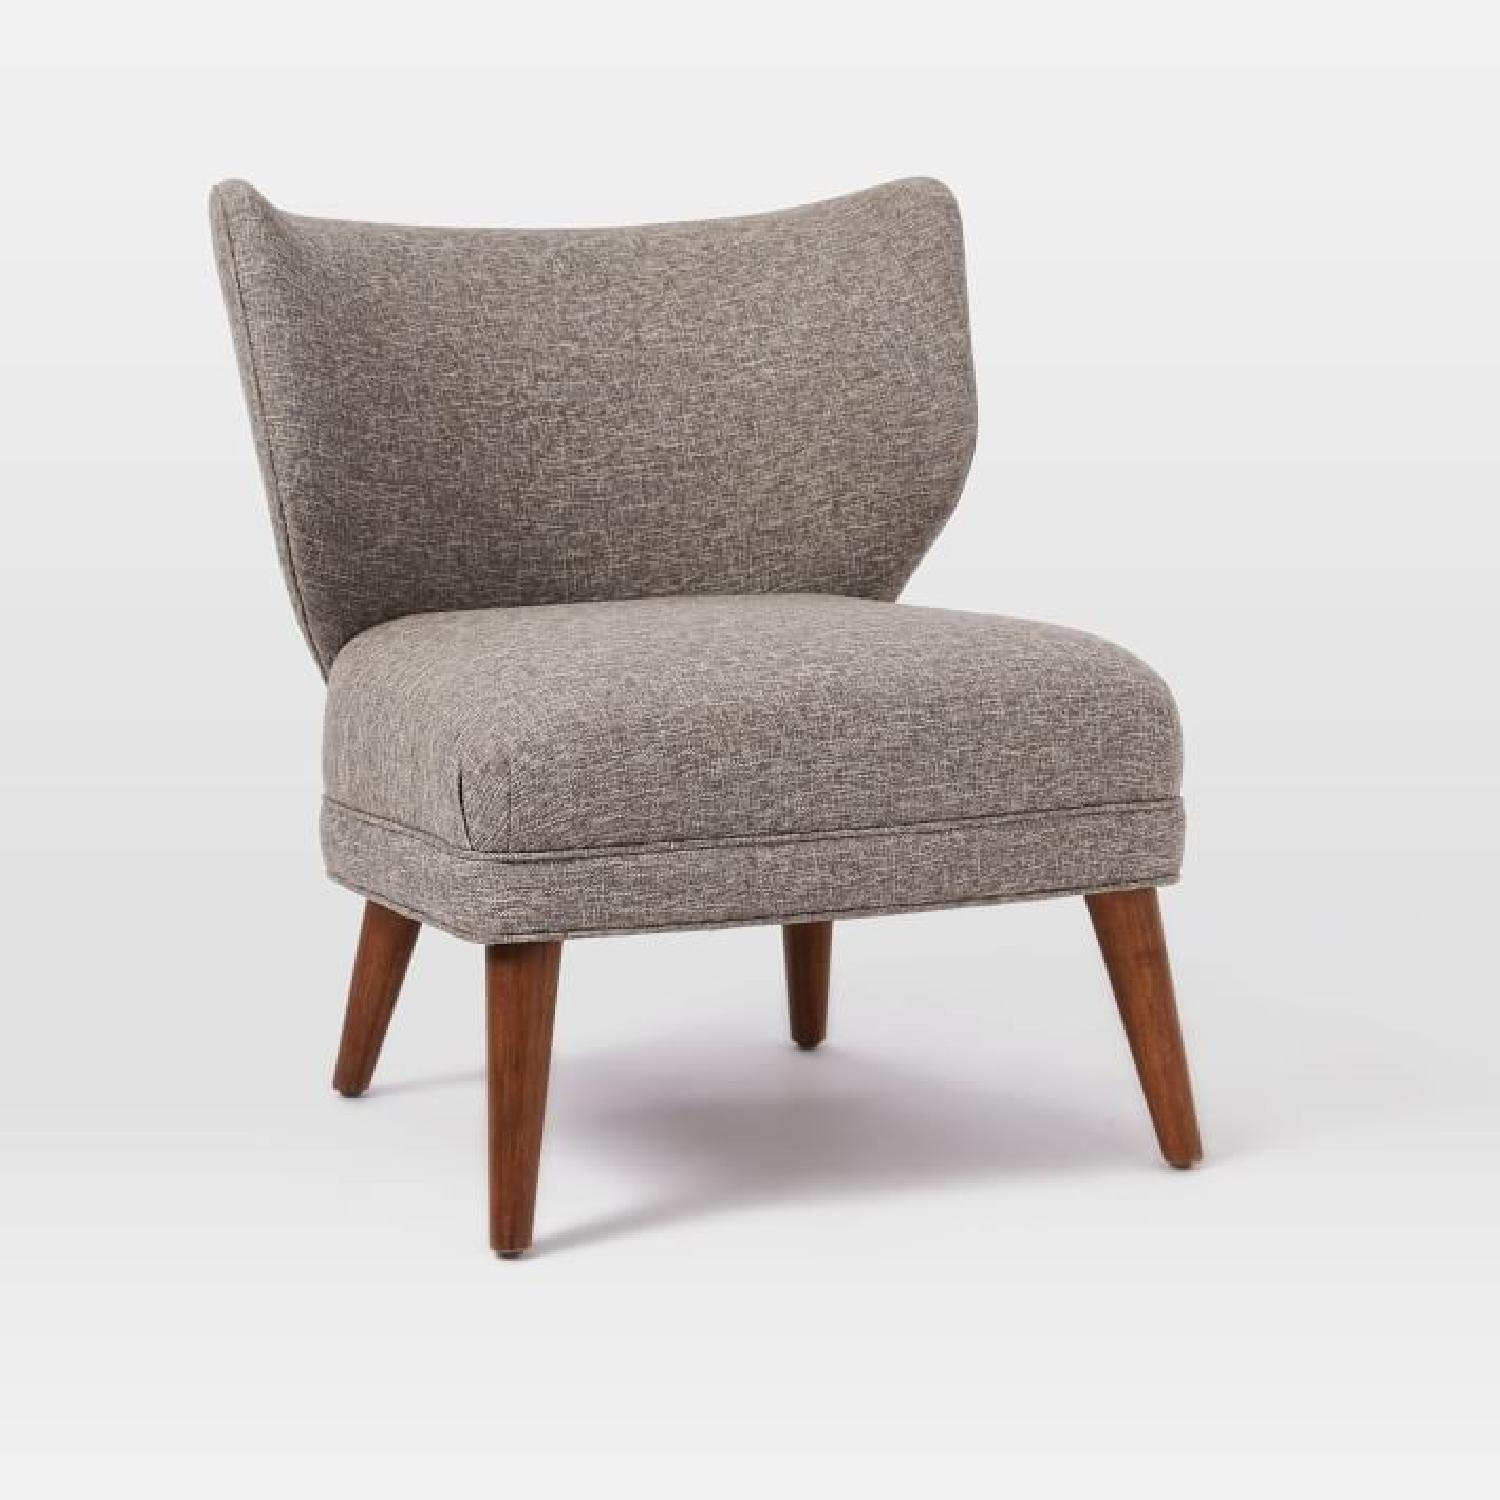 Retro Wing Chair West Elm Retro Wing Chair Aptdeco